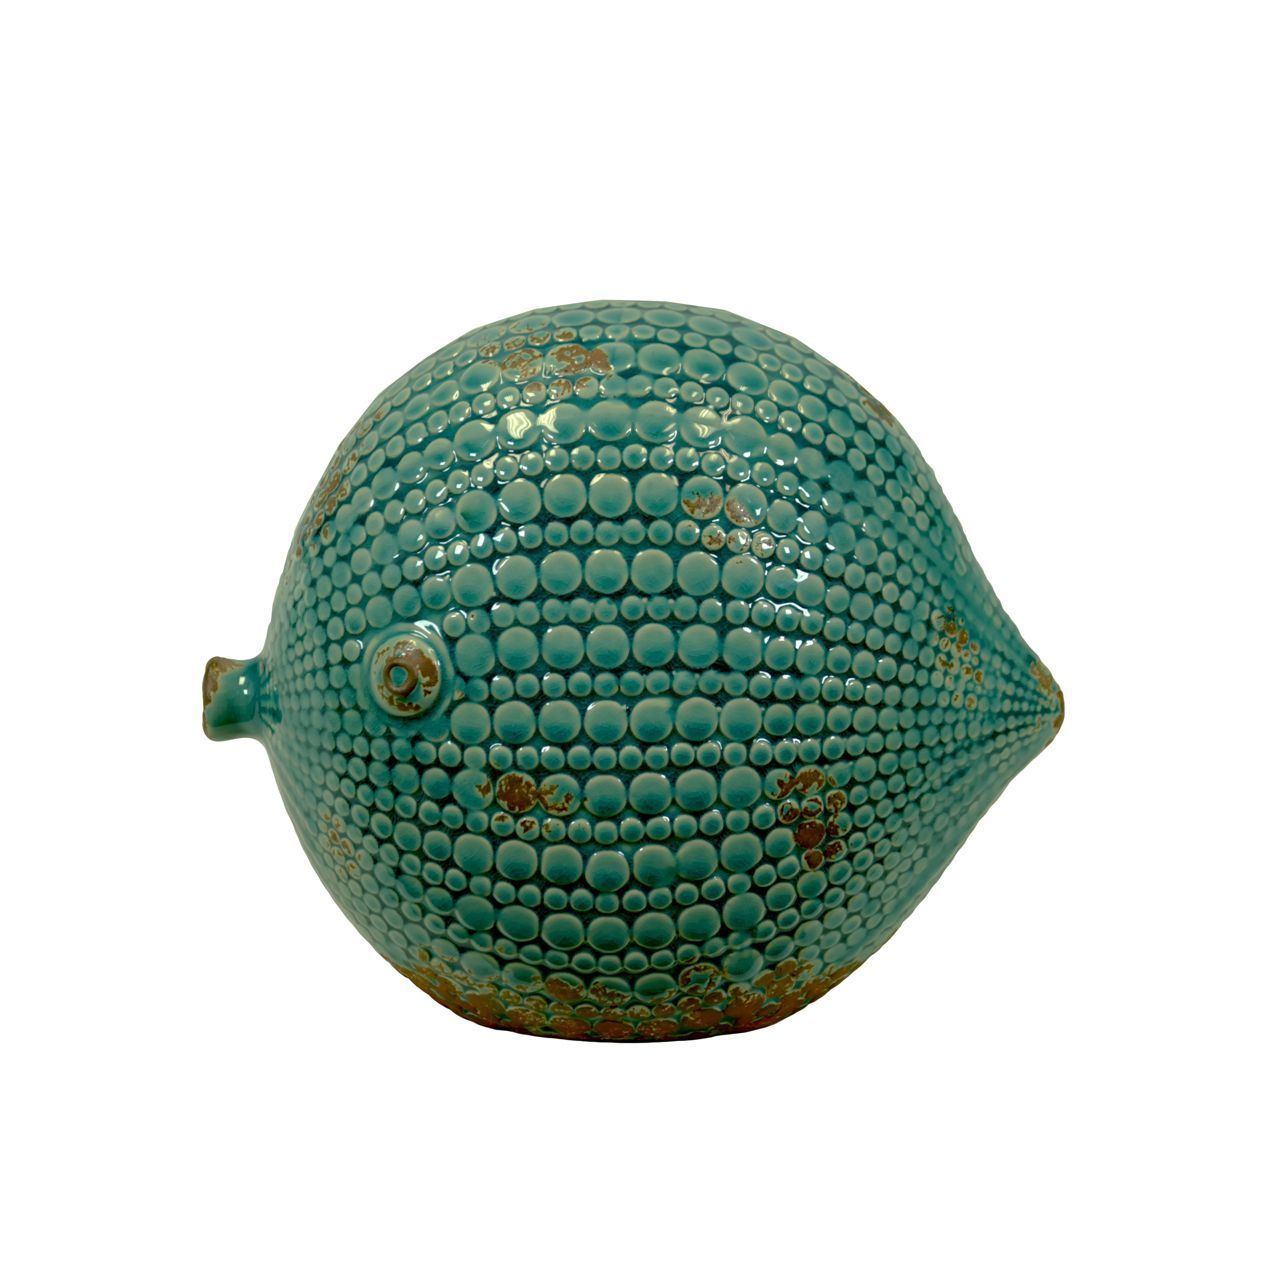 Urban Trends Collection Ceramic Round Fish Figurine Large Distressed Gloss Finish Teal (Ceramic Figurine Gloss Finish Blue)